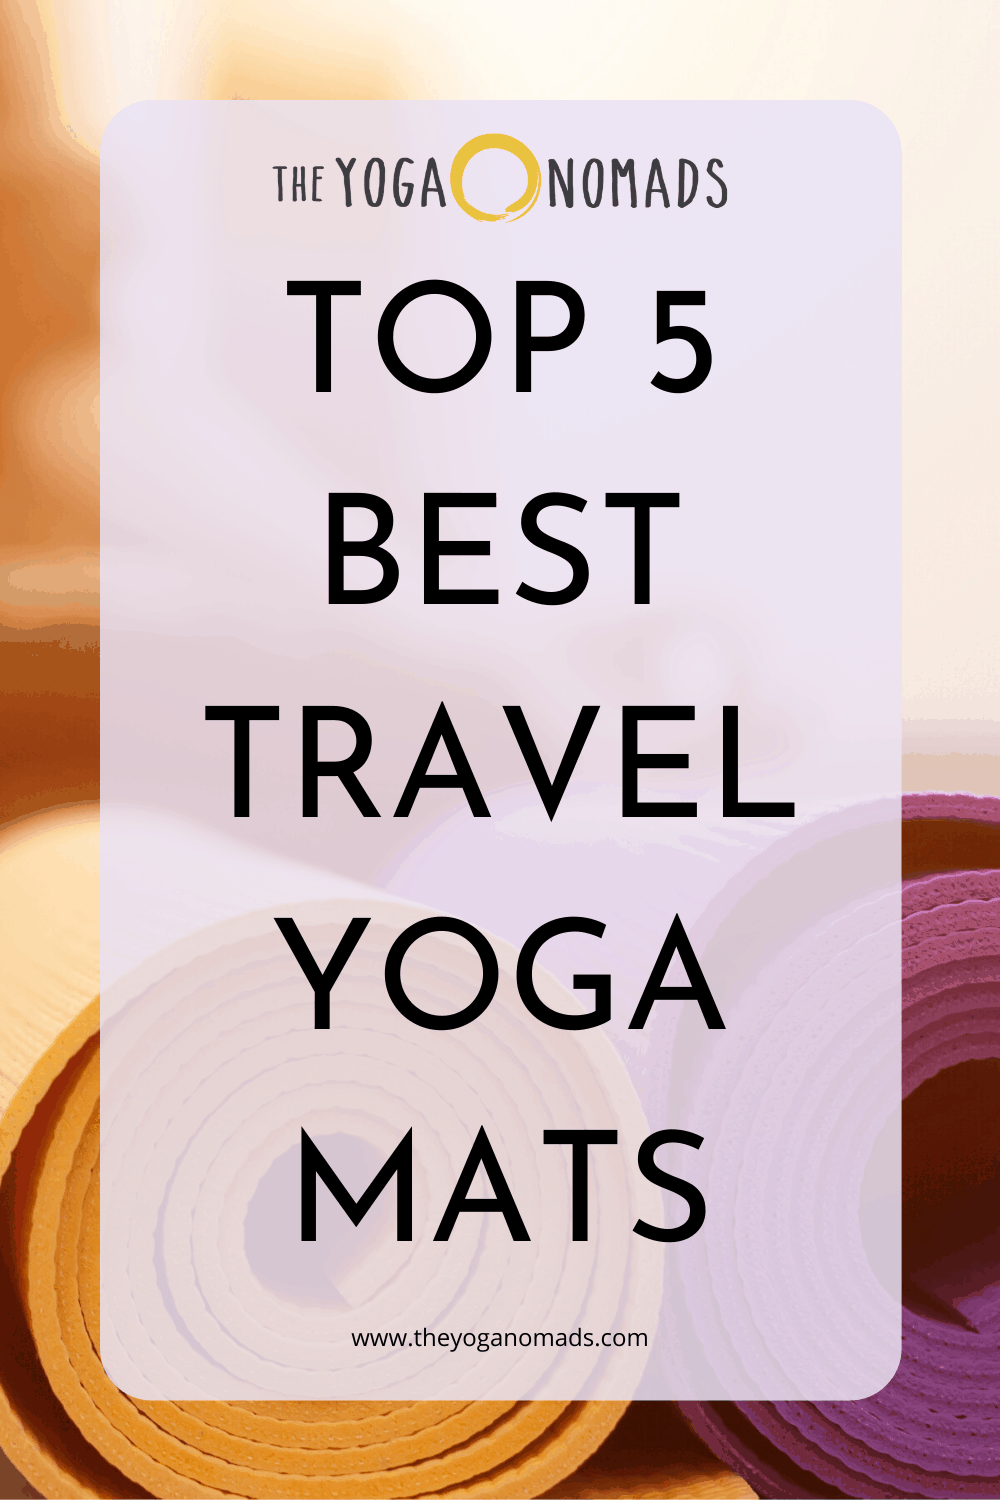 Top 5 Best Travel Yoga Mats